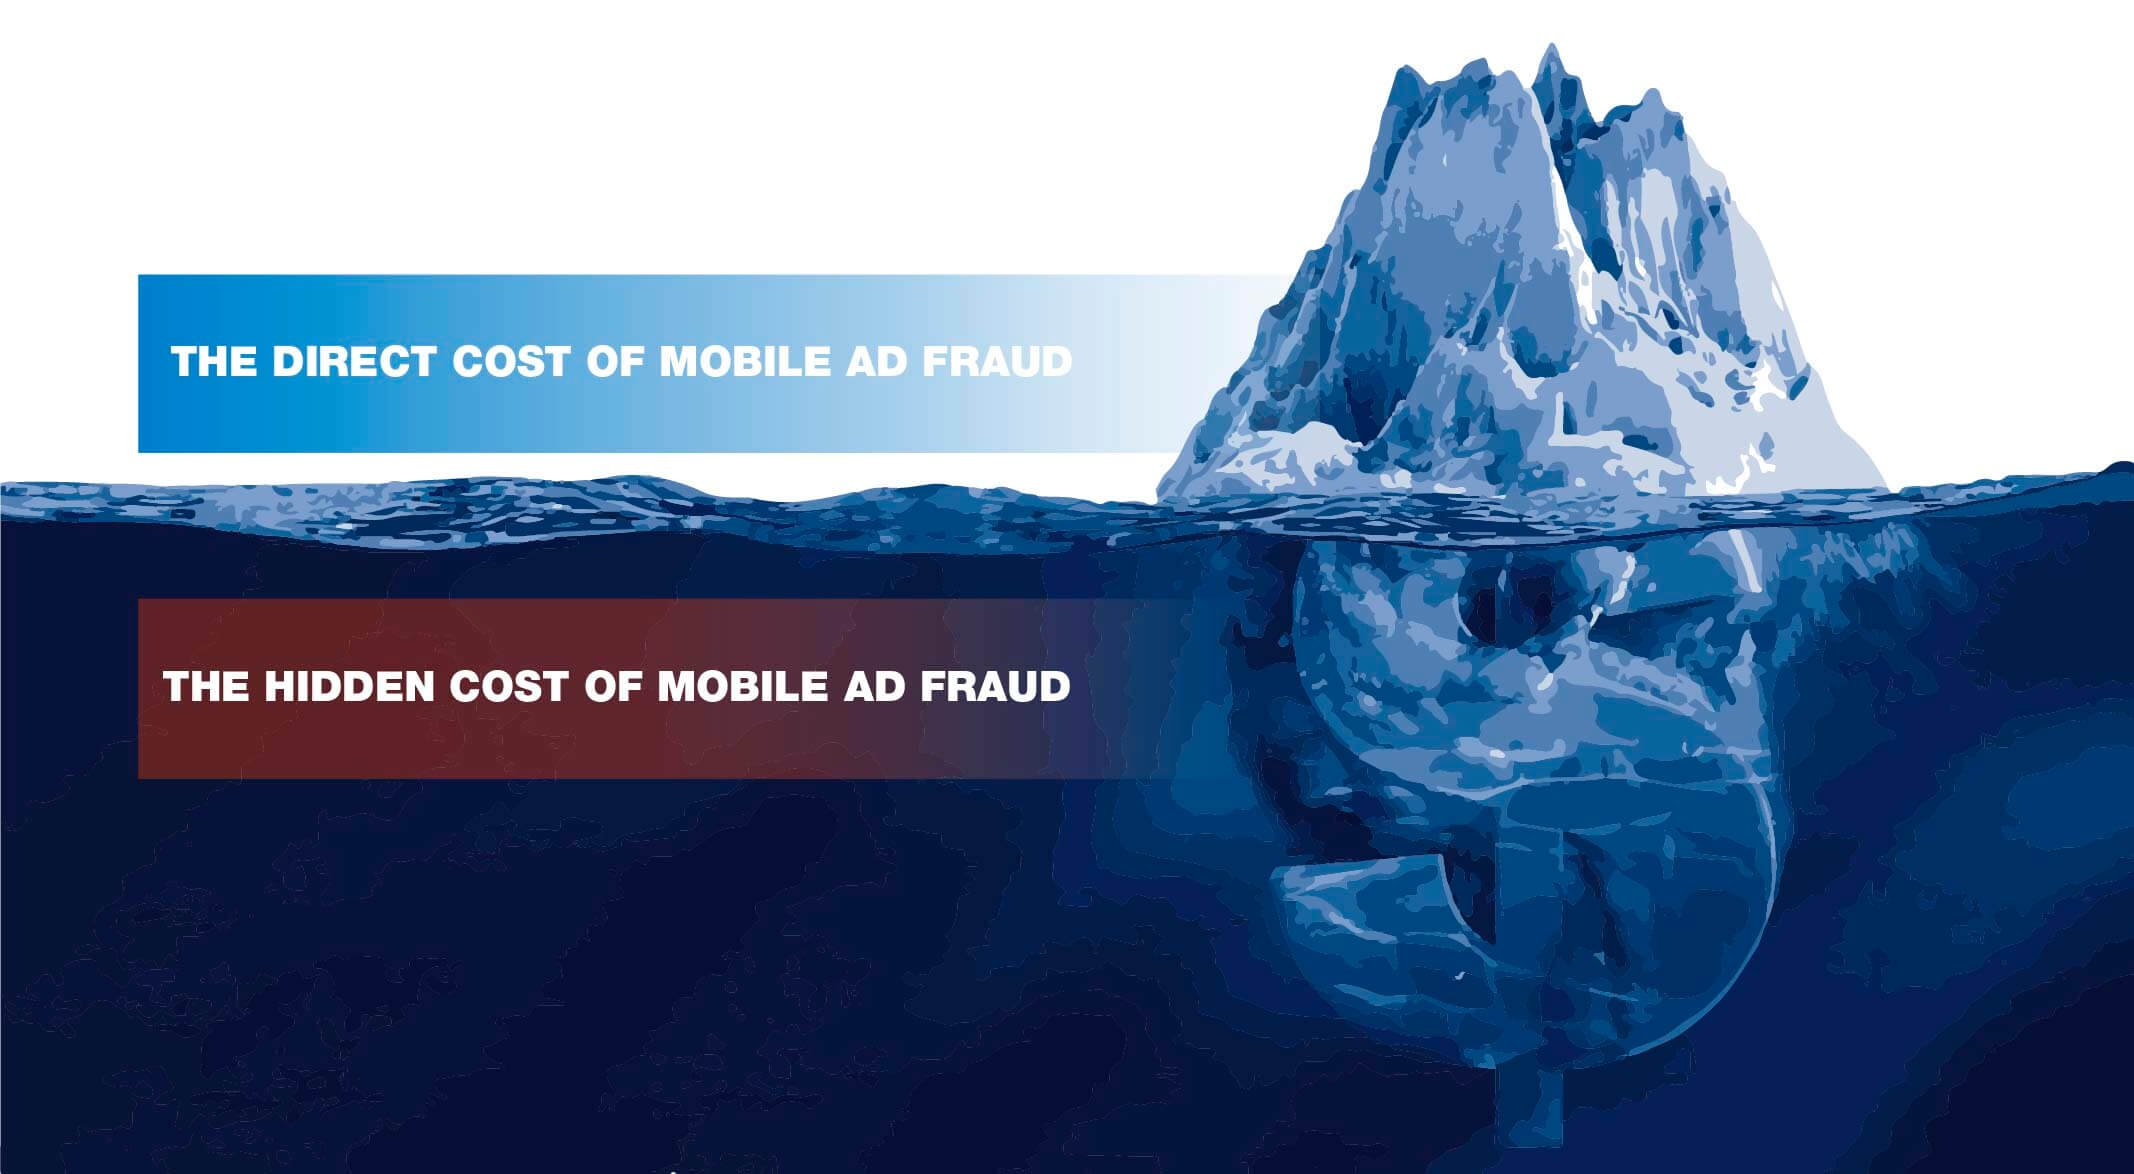 Direct and hidden costs of mobile ad fraud